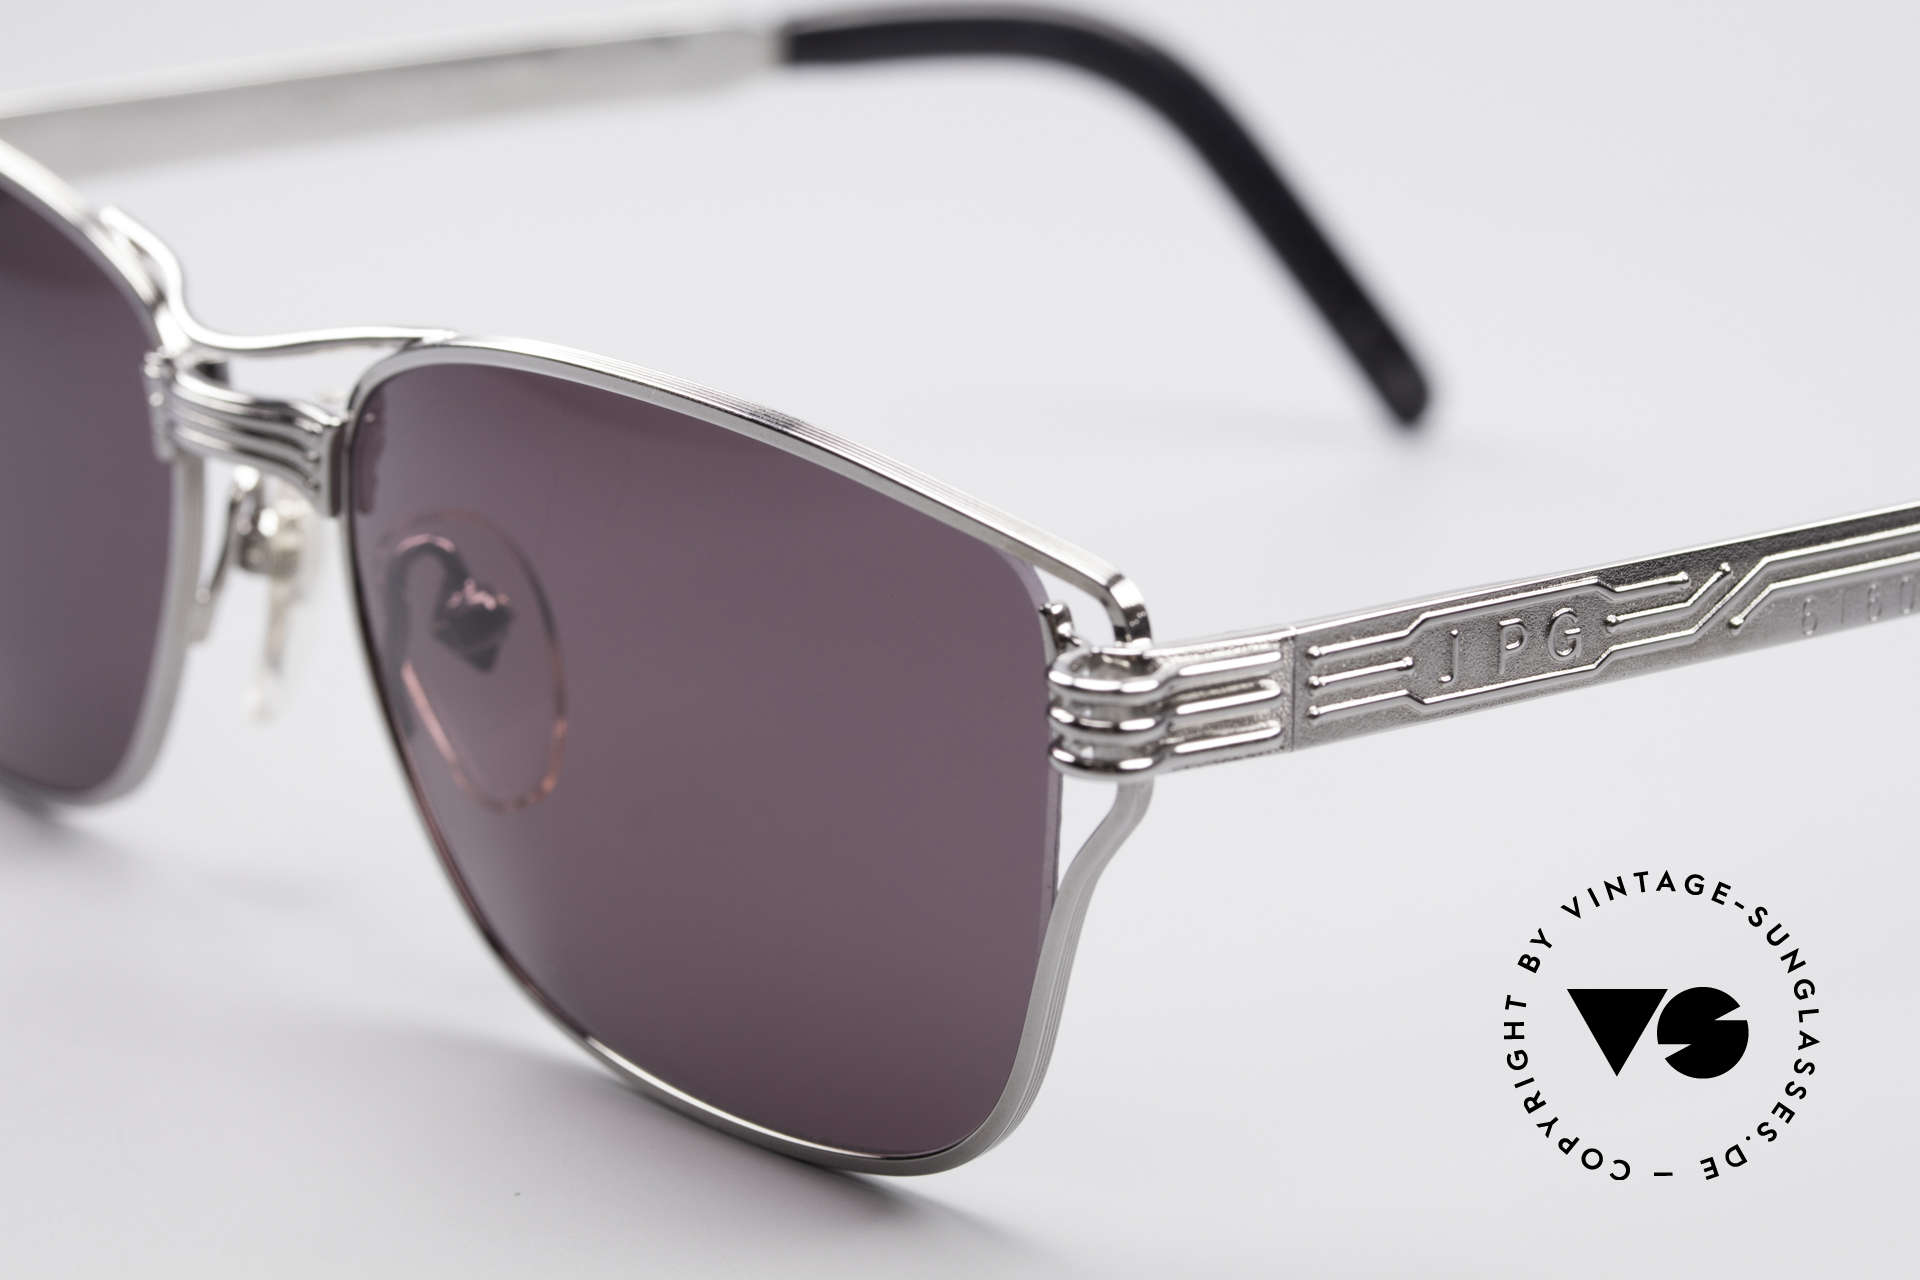 Jean Paul Gaultier 56-4173 Striking Square Sunglasses, tangible, outstanding TOP-quality, made in Japan, Made for Men